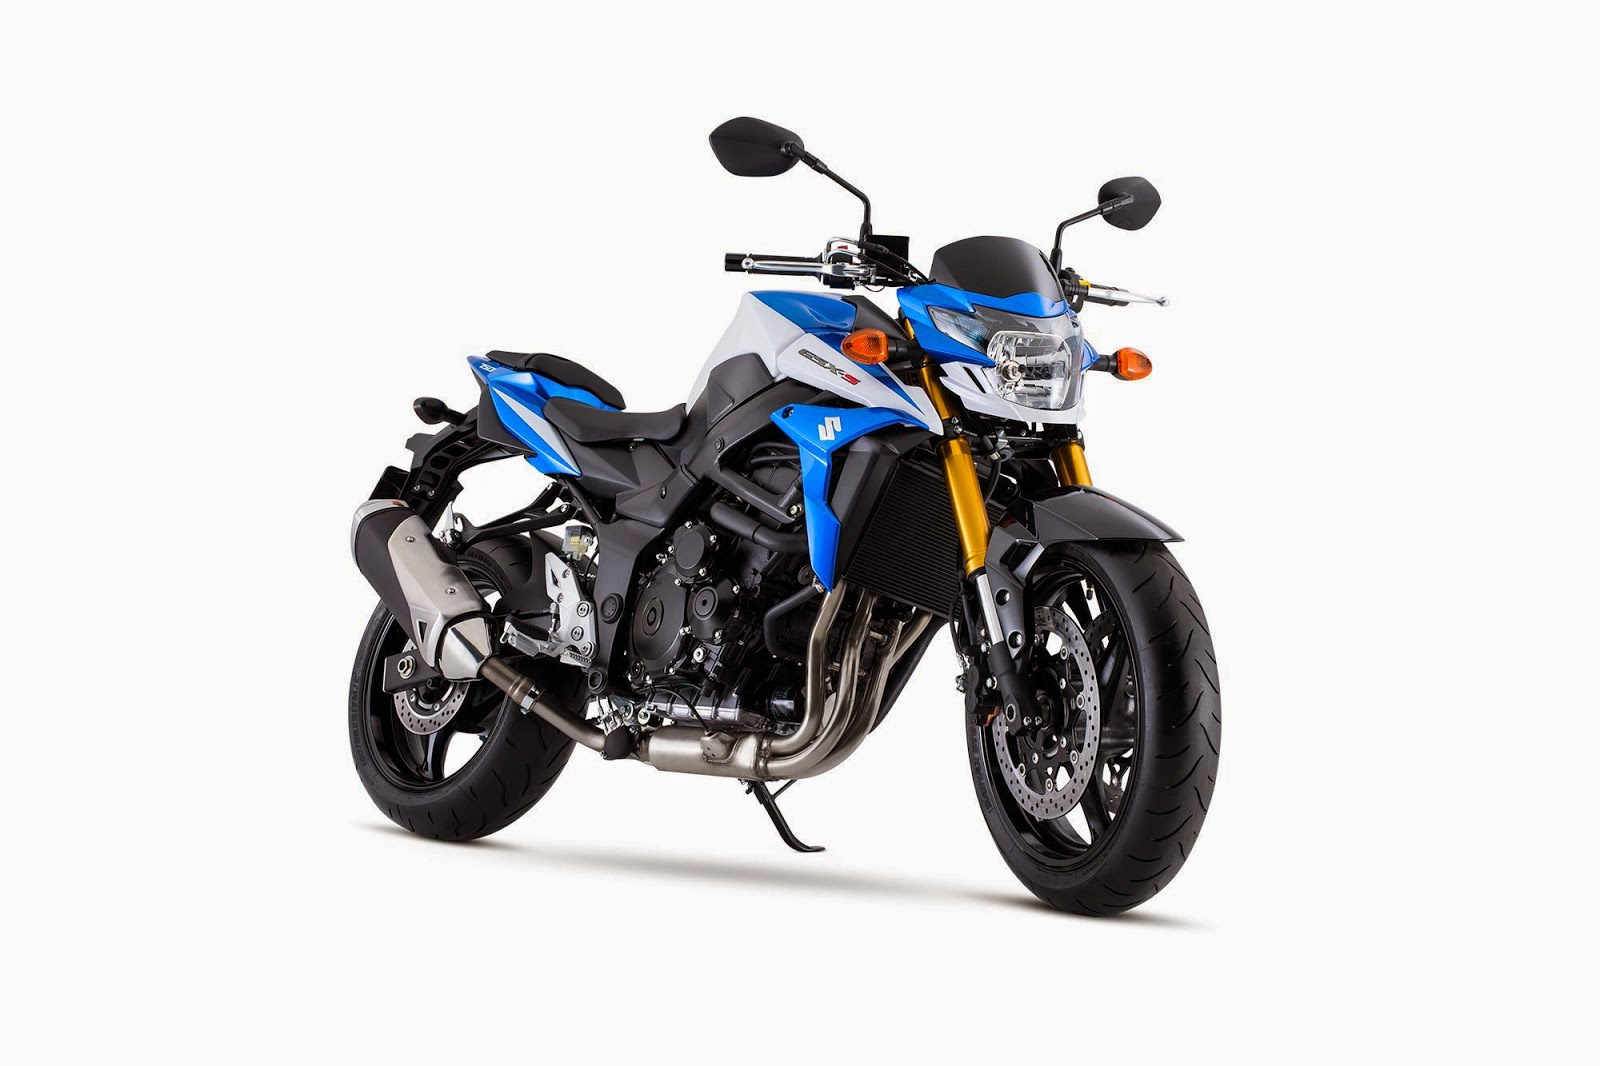 newly unveiled 2015 suzuki gsx s750z and gsx s750 bike car art photos images wallpapers pics. Black Bedroom Furniture Sets. Home Design Ideas